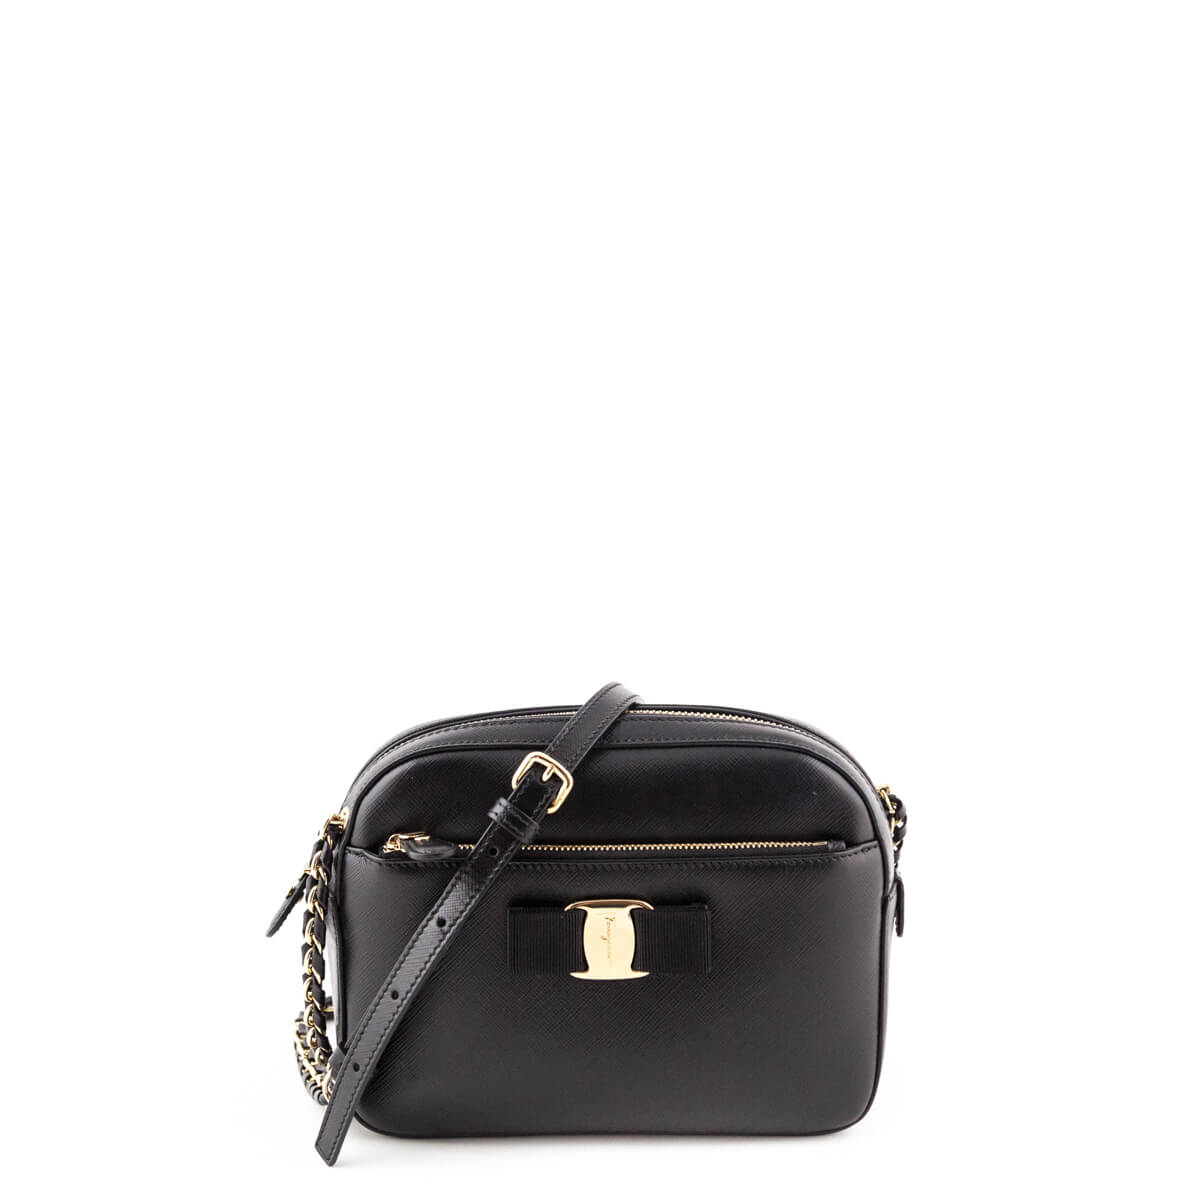 Salvatore Ferragamo Black Calfskin Lydia Camera Bag - LOVE that BAG -  Preowned Authentic Designer Handbags ... 9afb3976b94e6